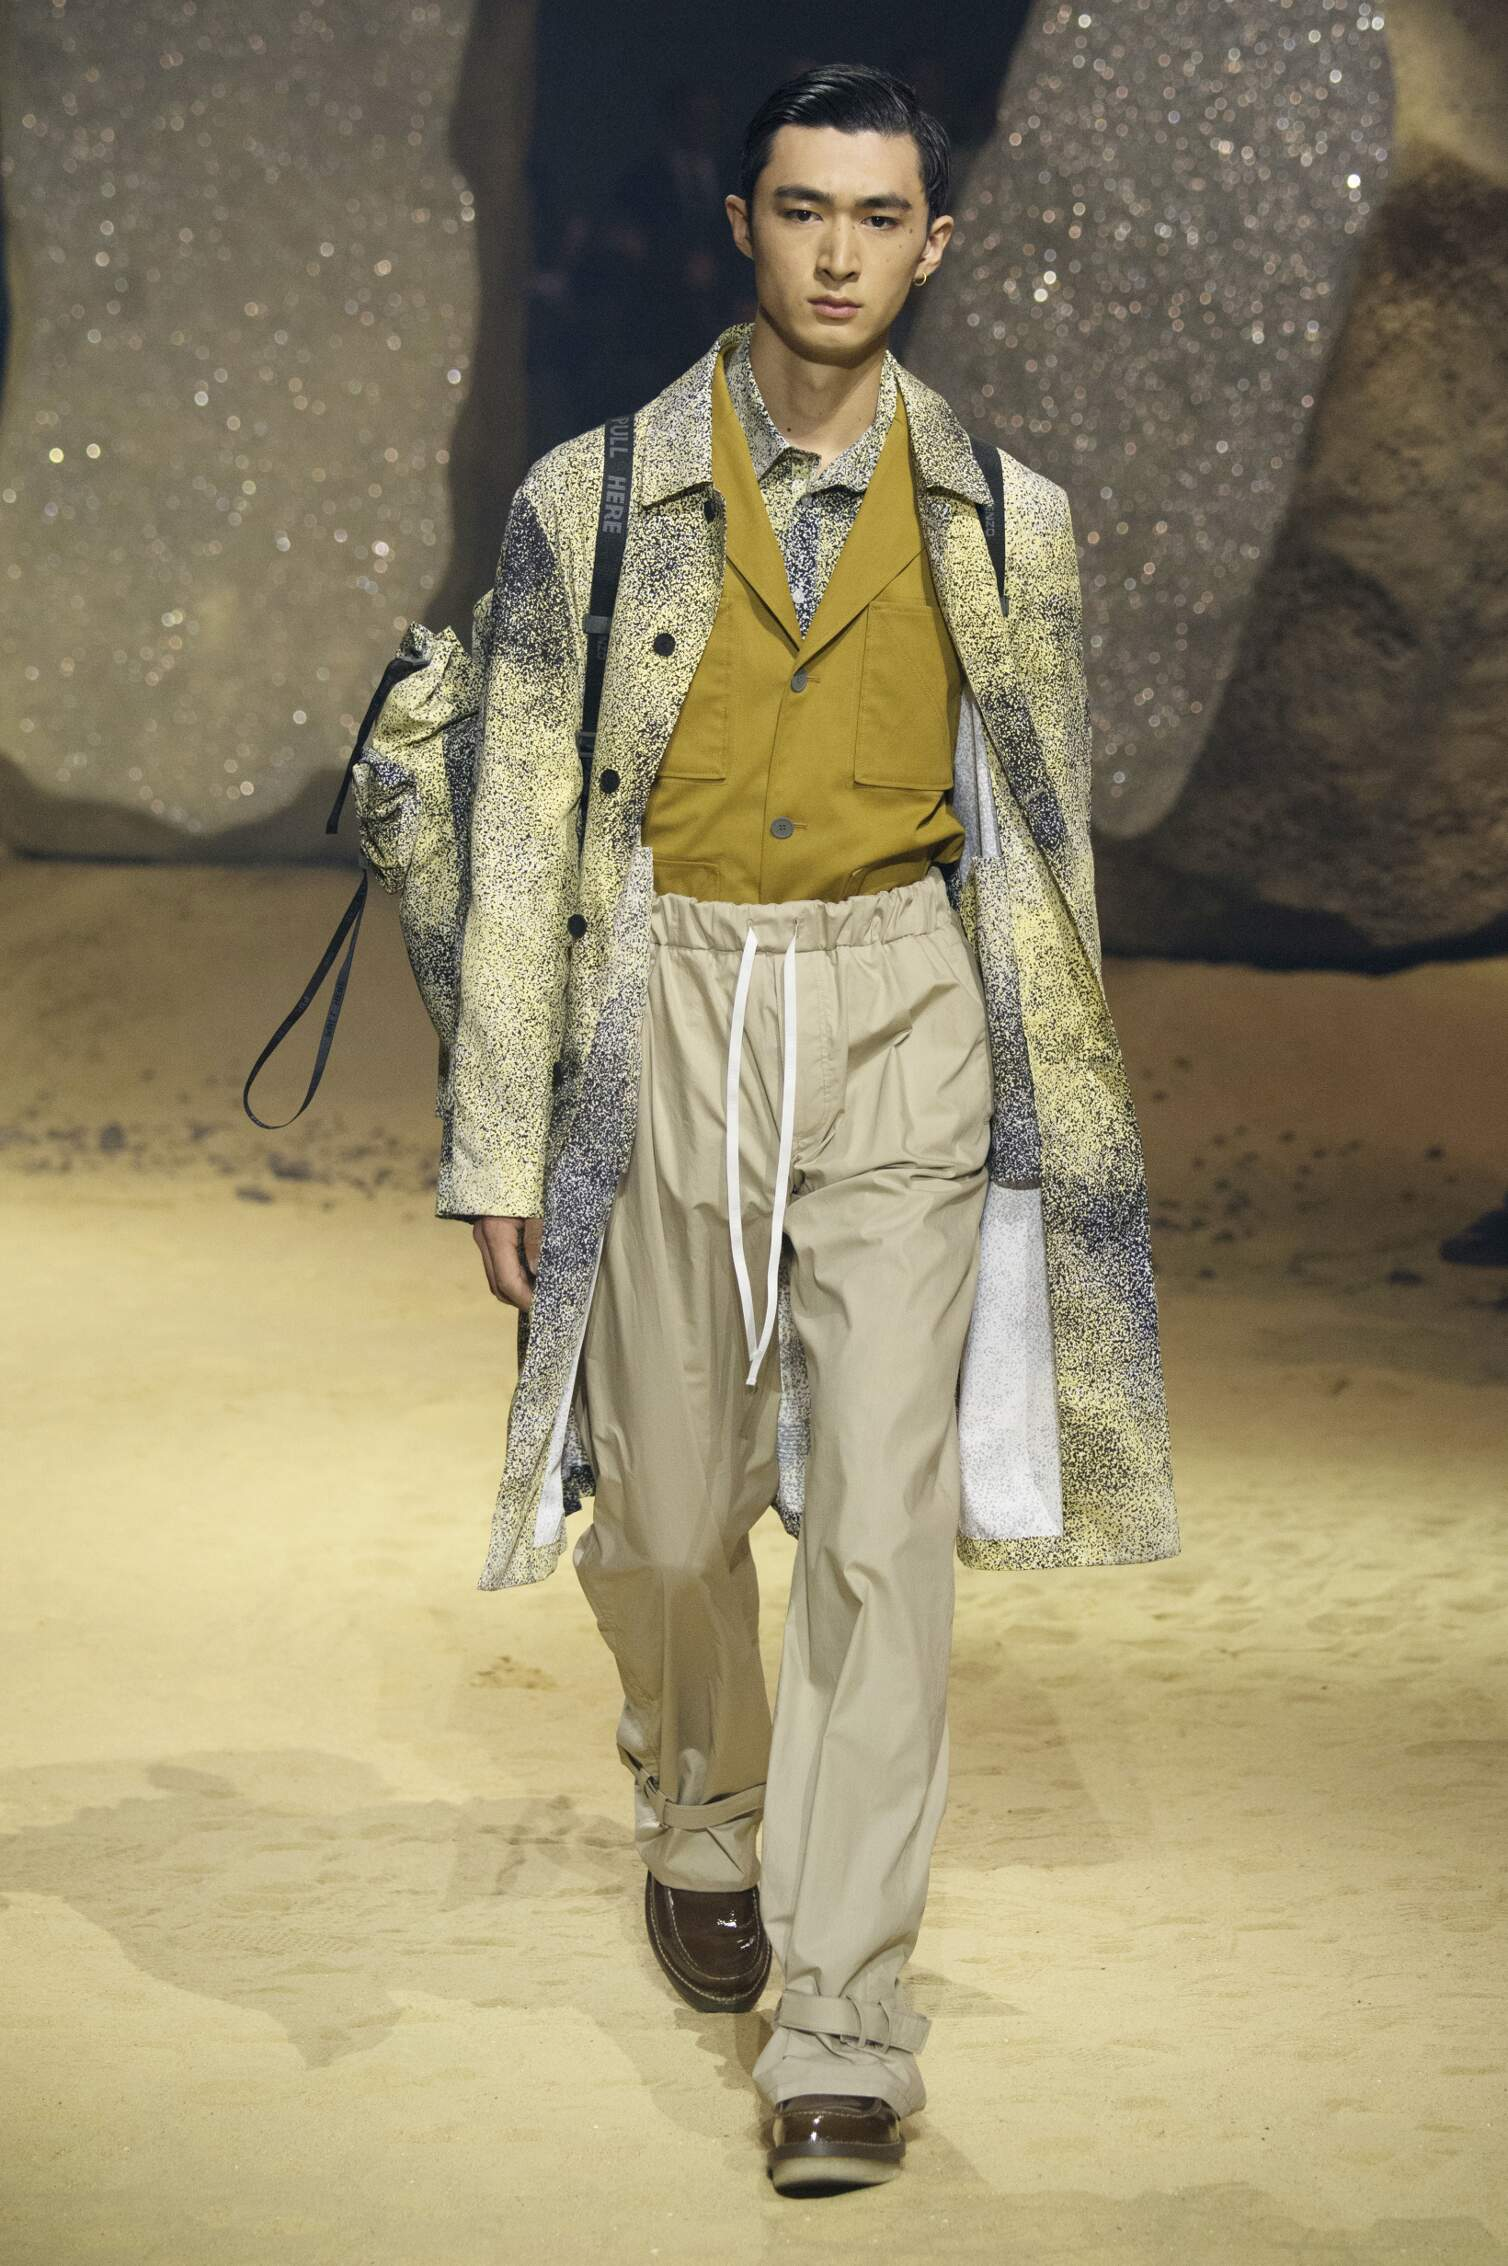 2016 Fashion Man Model Kenzo Collection Catwalk